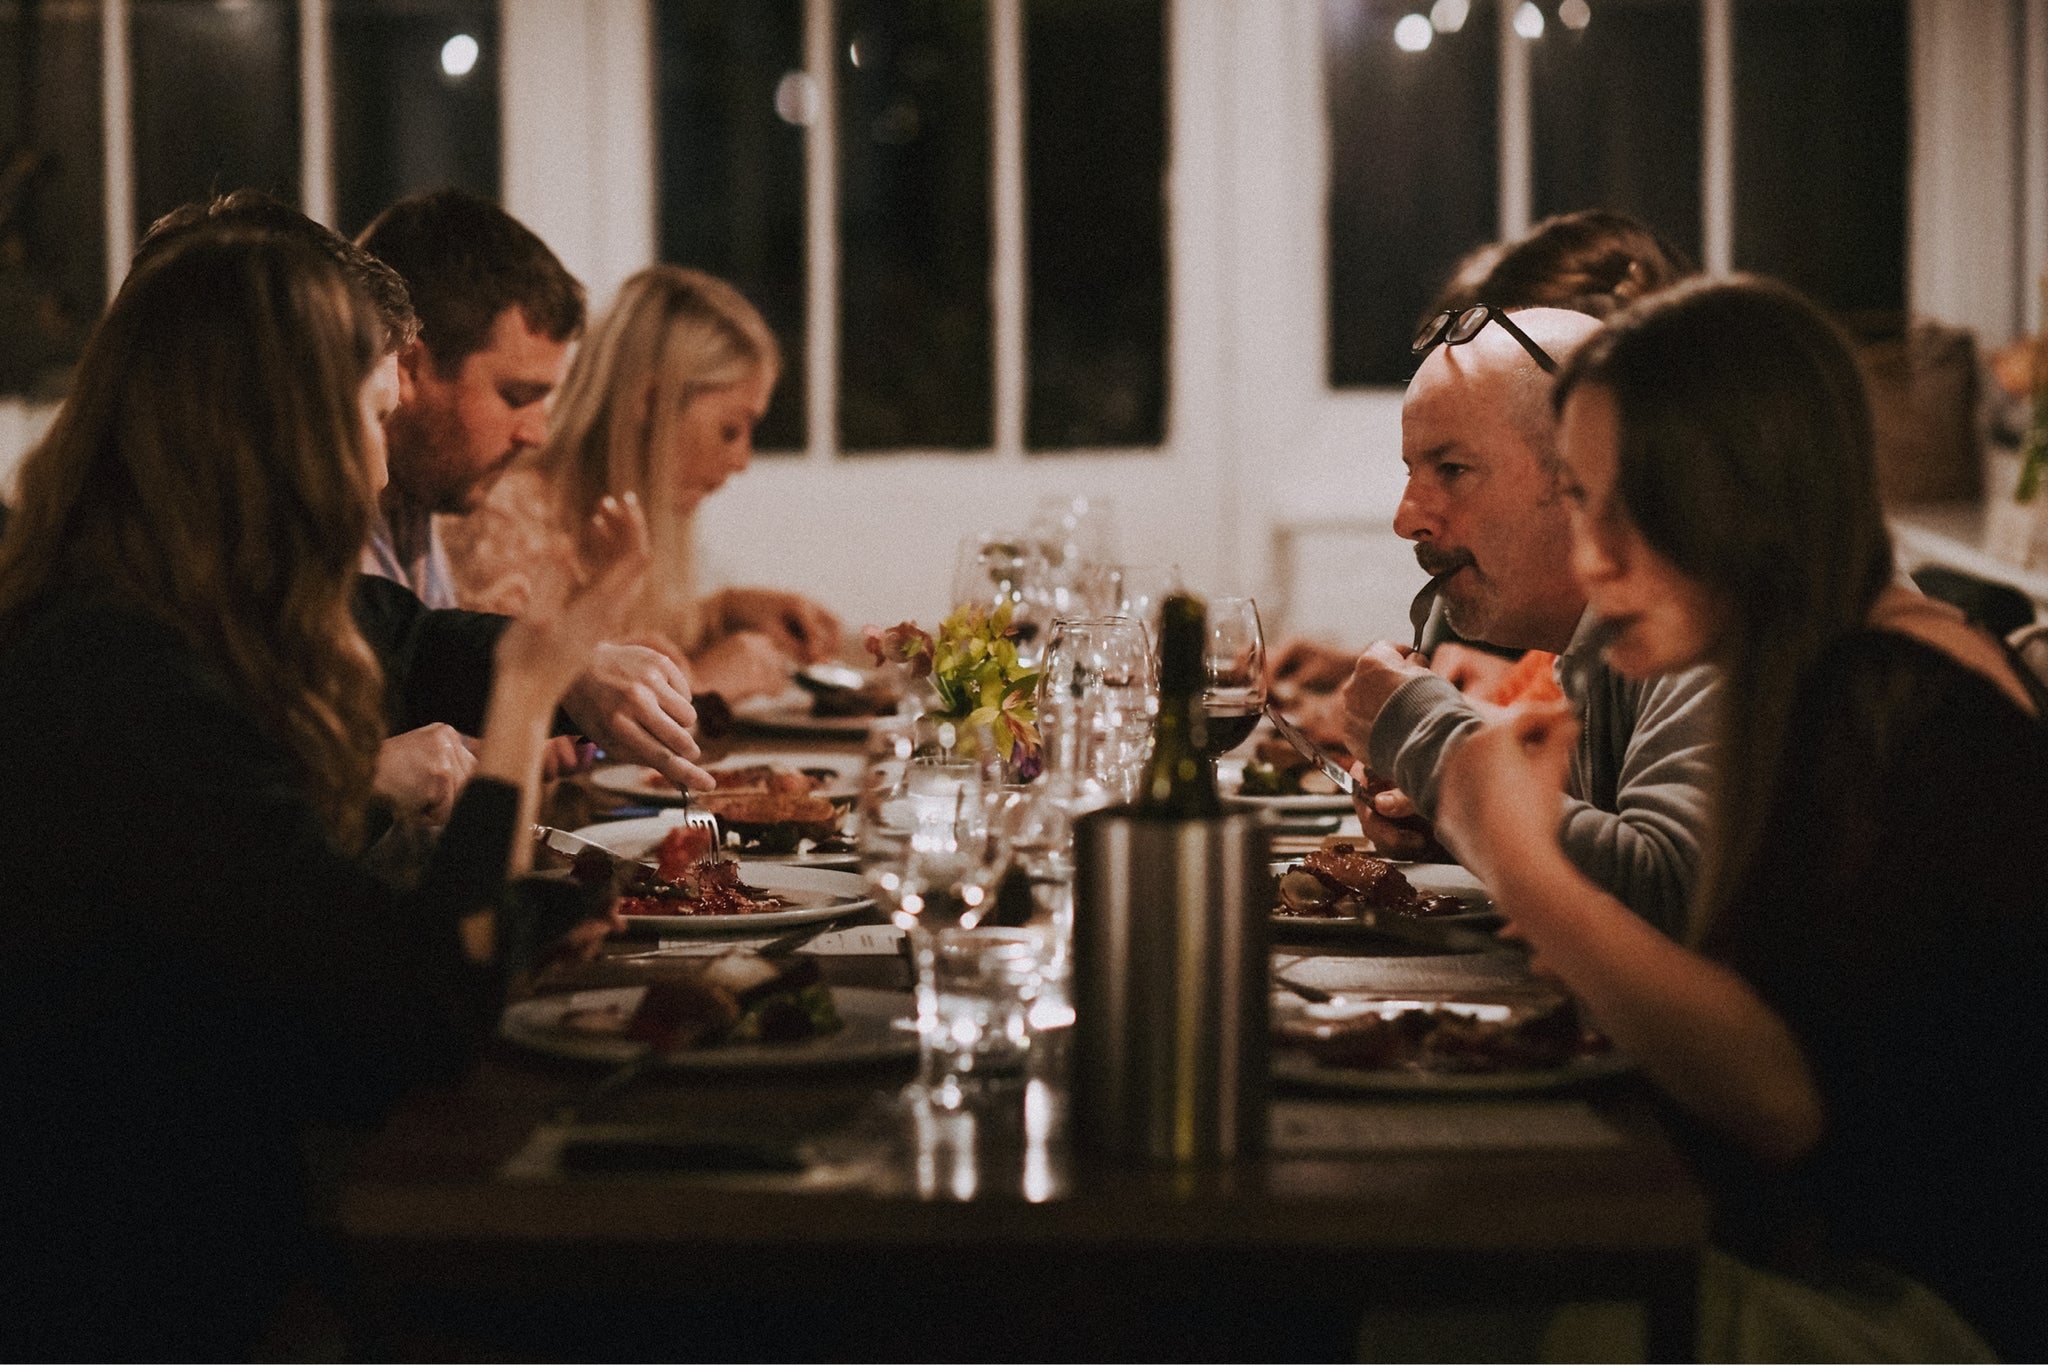 Pipers Farm collaborative supper